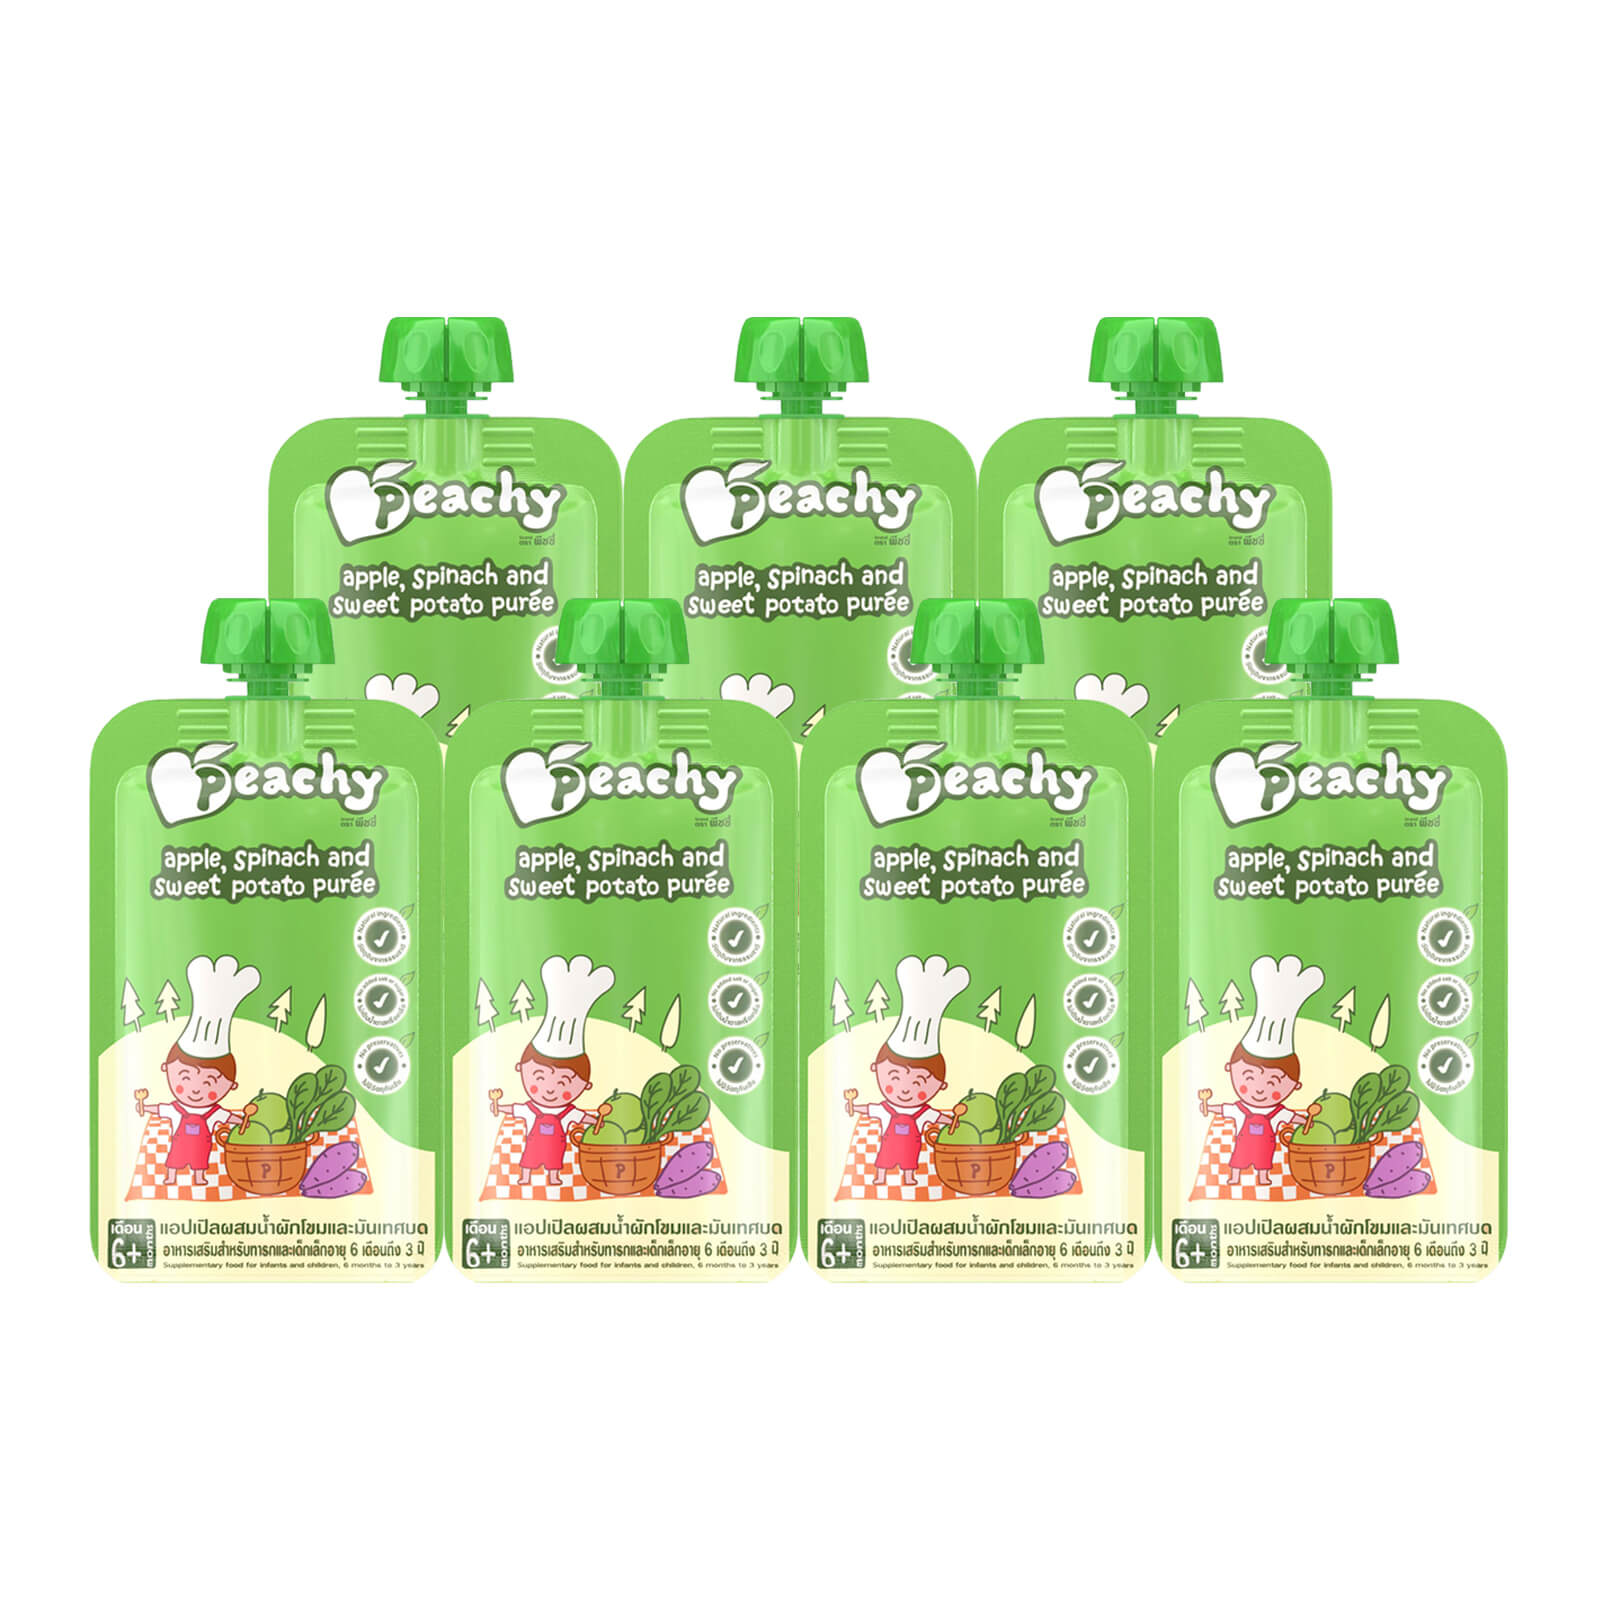 Peachy Baby Food - Apple, Spinach and Sweet Potato Puree Box (7 Pouches)